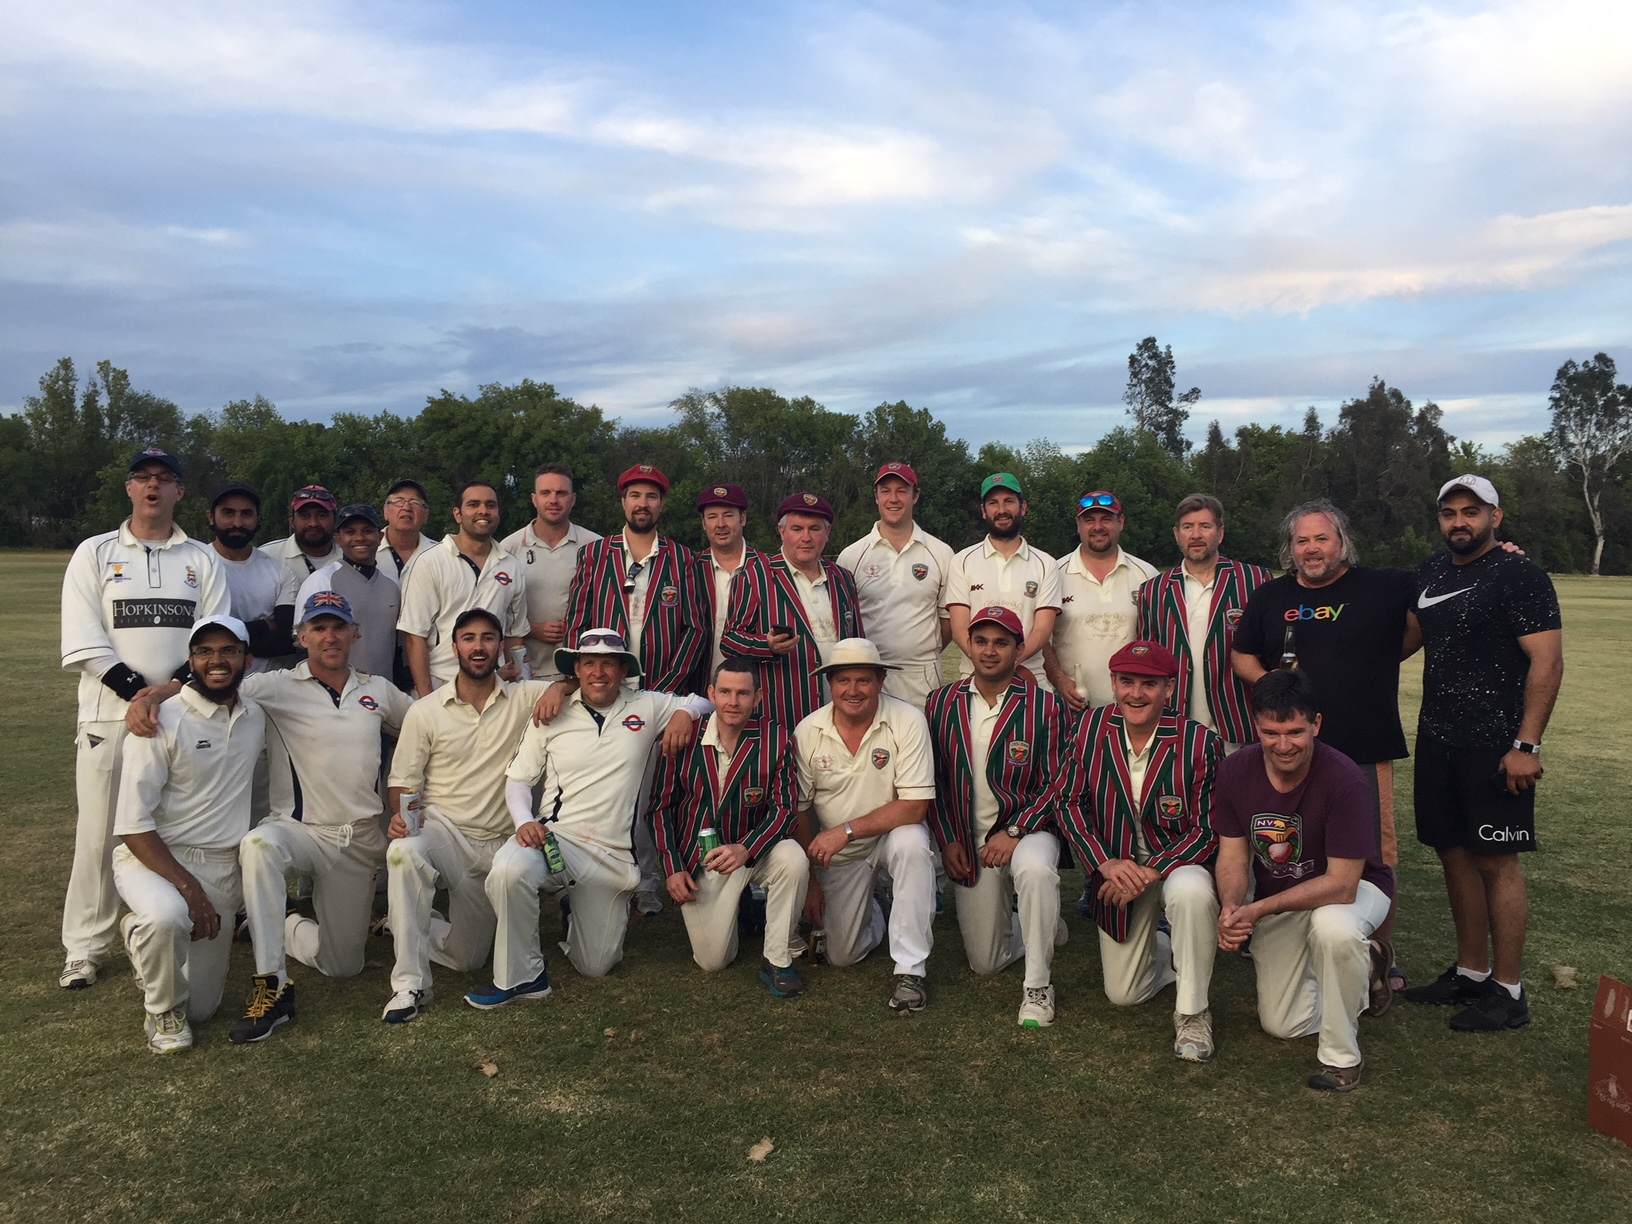 Malibu CC and Napa Valley CC pictured at Woodley Park at the end of their recent match. Photo Credit - Jamie Johnson